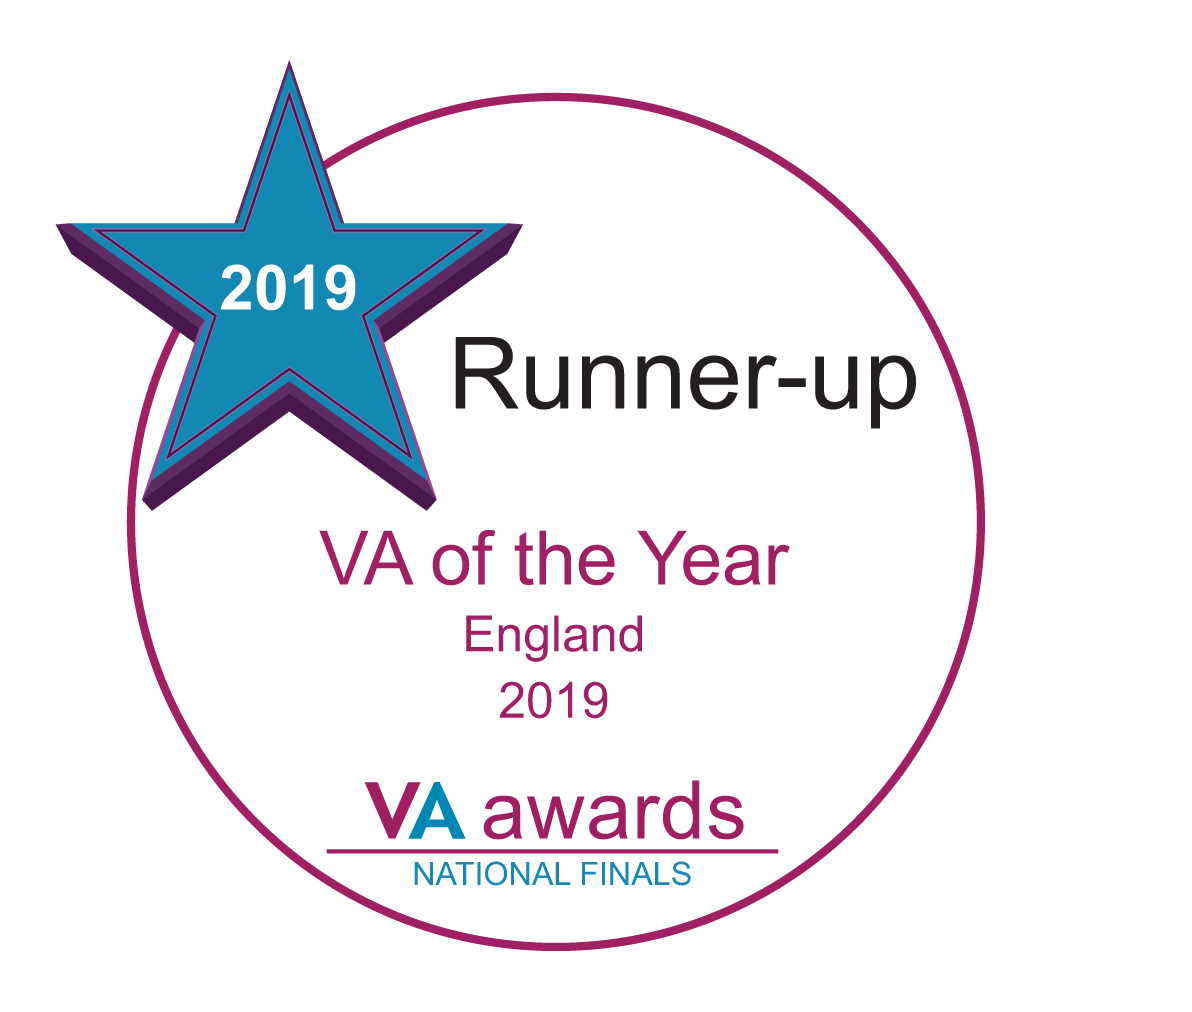 VA of the year England 2019 - runner up